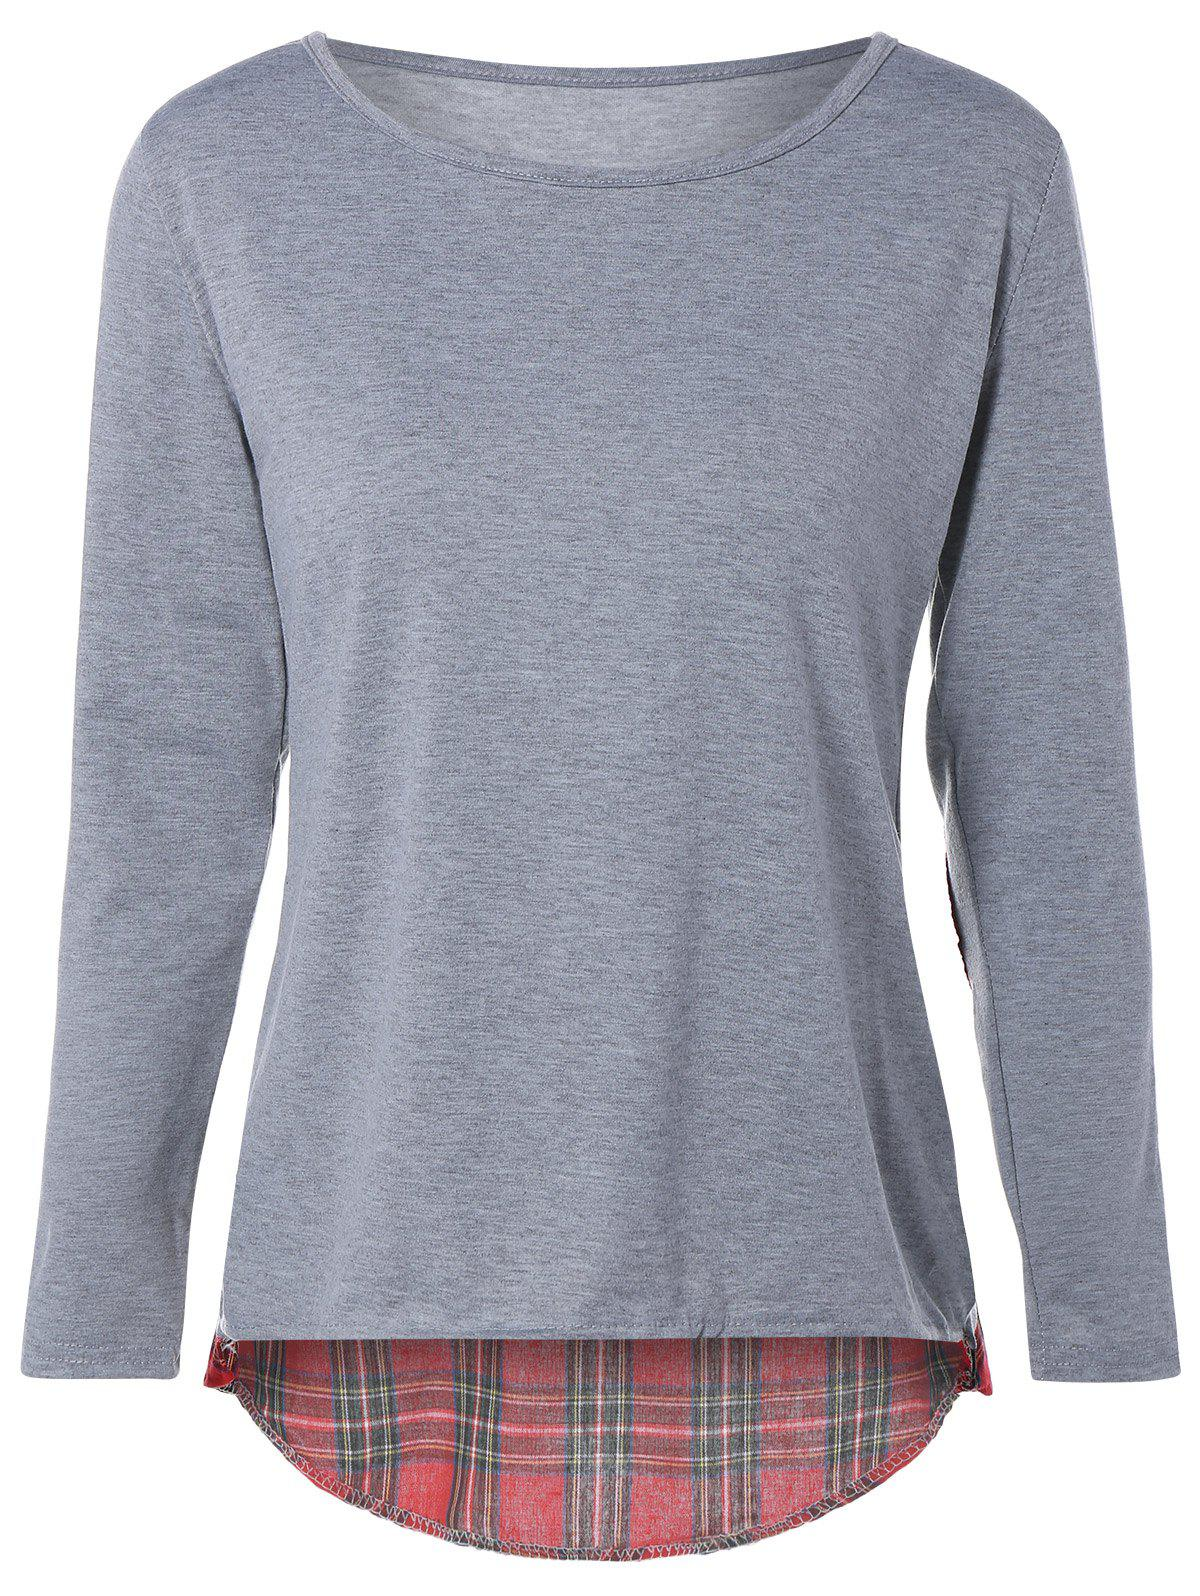 Image of Tartan Elbow Patch T-Shirt